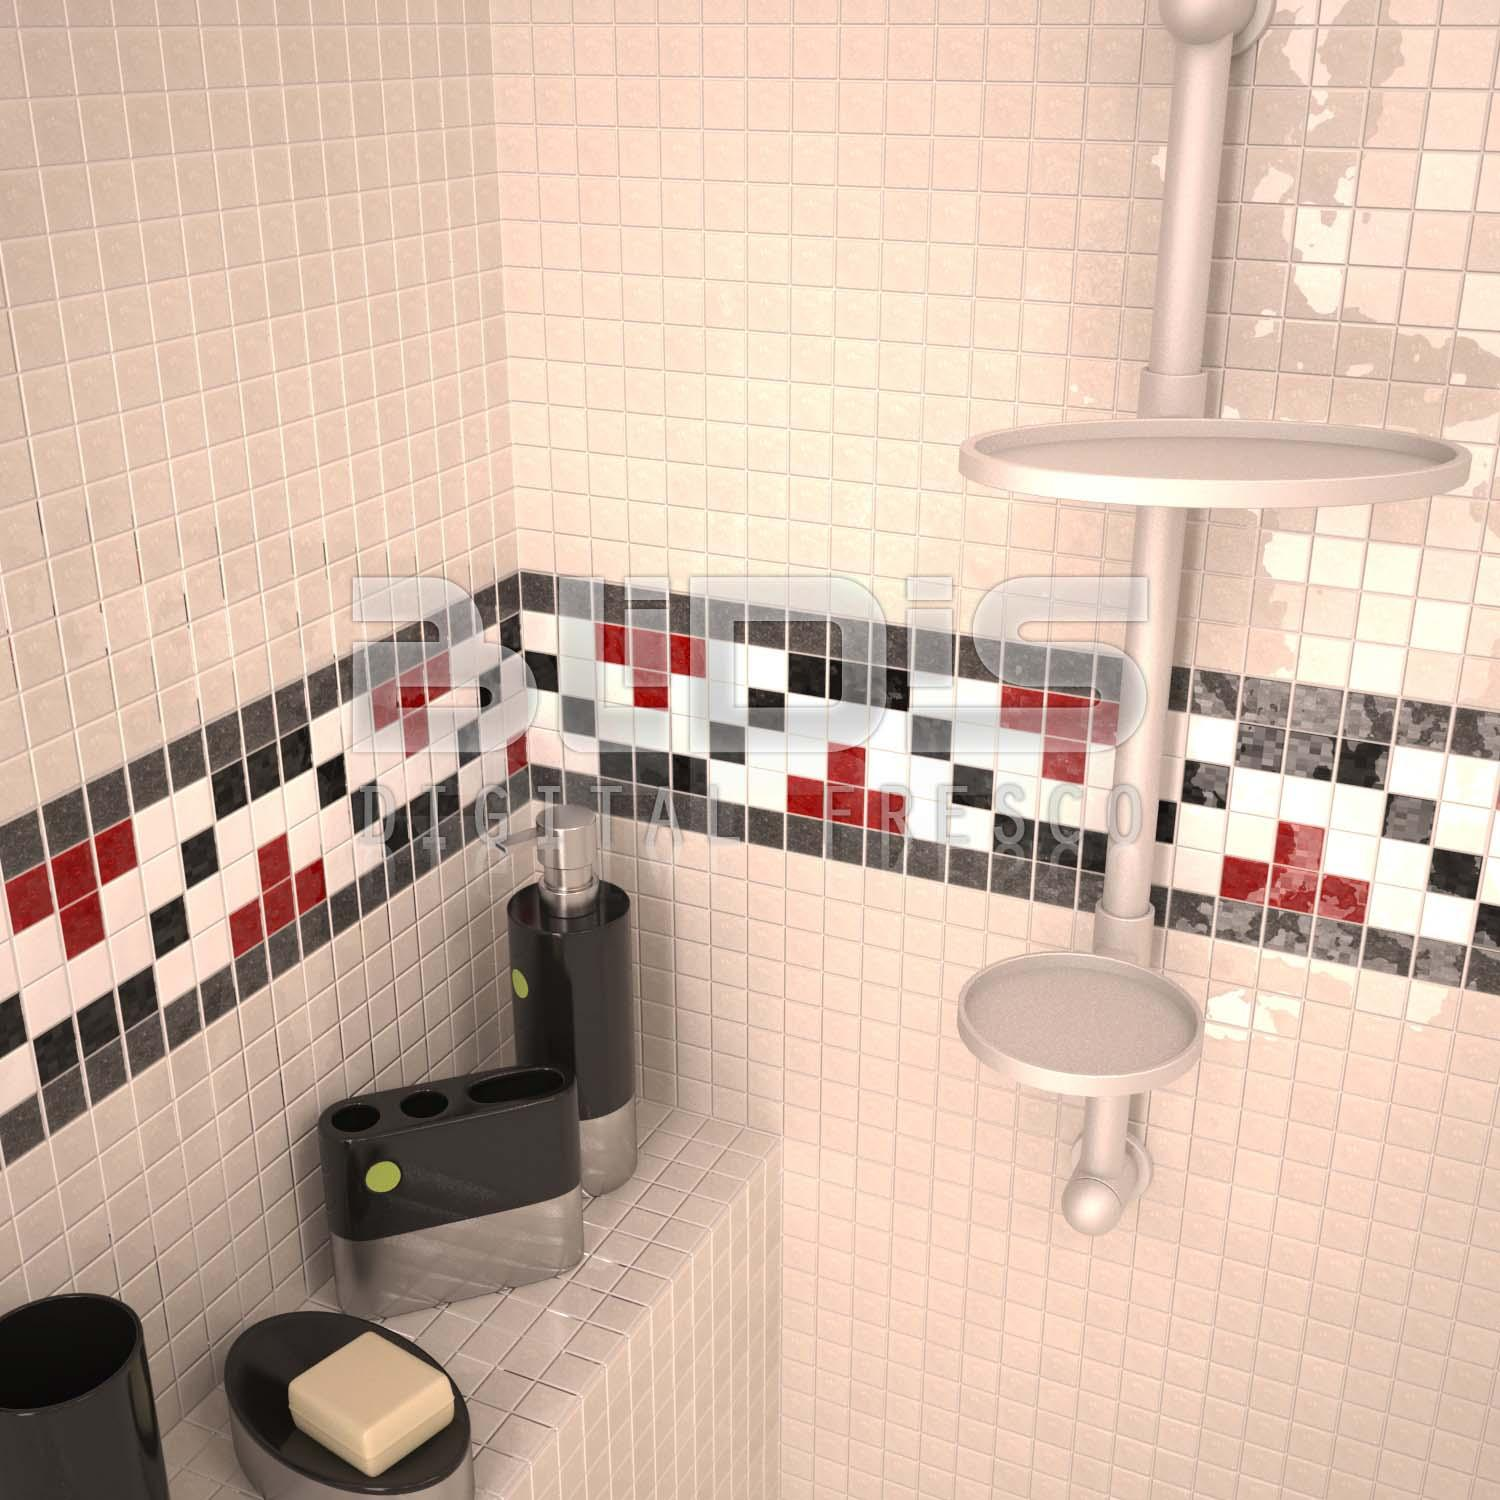 Glass Tiles In Bathroom: Glass Tiles Border: Colored Harmony 1